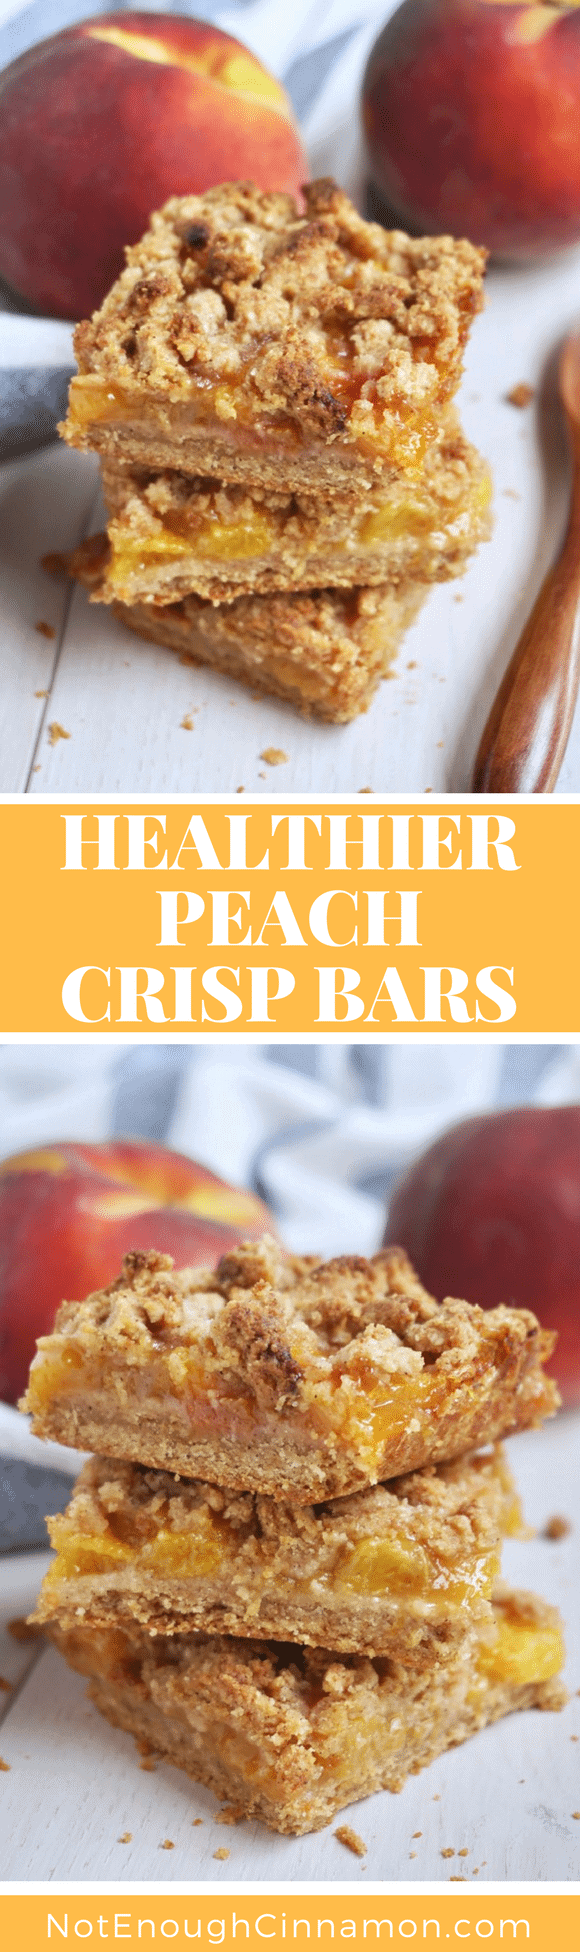 Healthier Peach Crisp Bars |These healthy peach crisp bars with almond flour crumb topping are gluten-free, naturally sweetened and packed with juicy peaches! The perfect guilt-free summer dessert to bring to parties, BBQs or picnics! #summerdesserts, #peachcrisp, #streuselbars, #glutenfreebaking, #refinedsugarfree